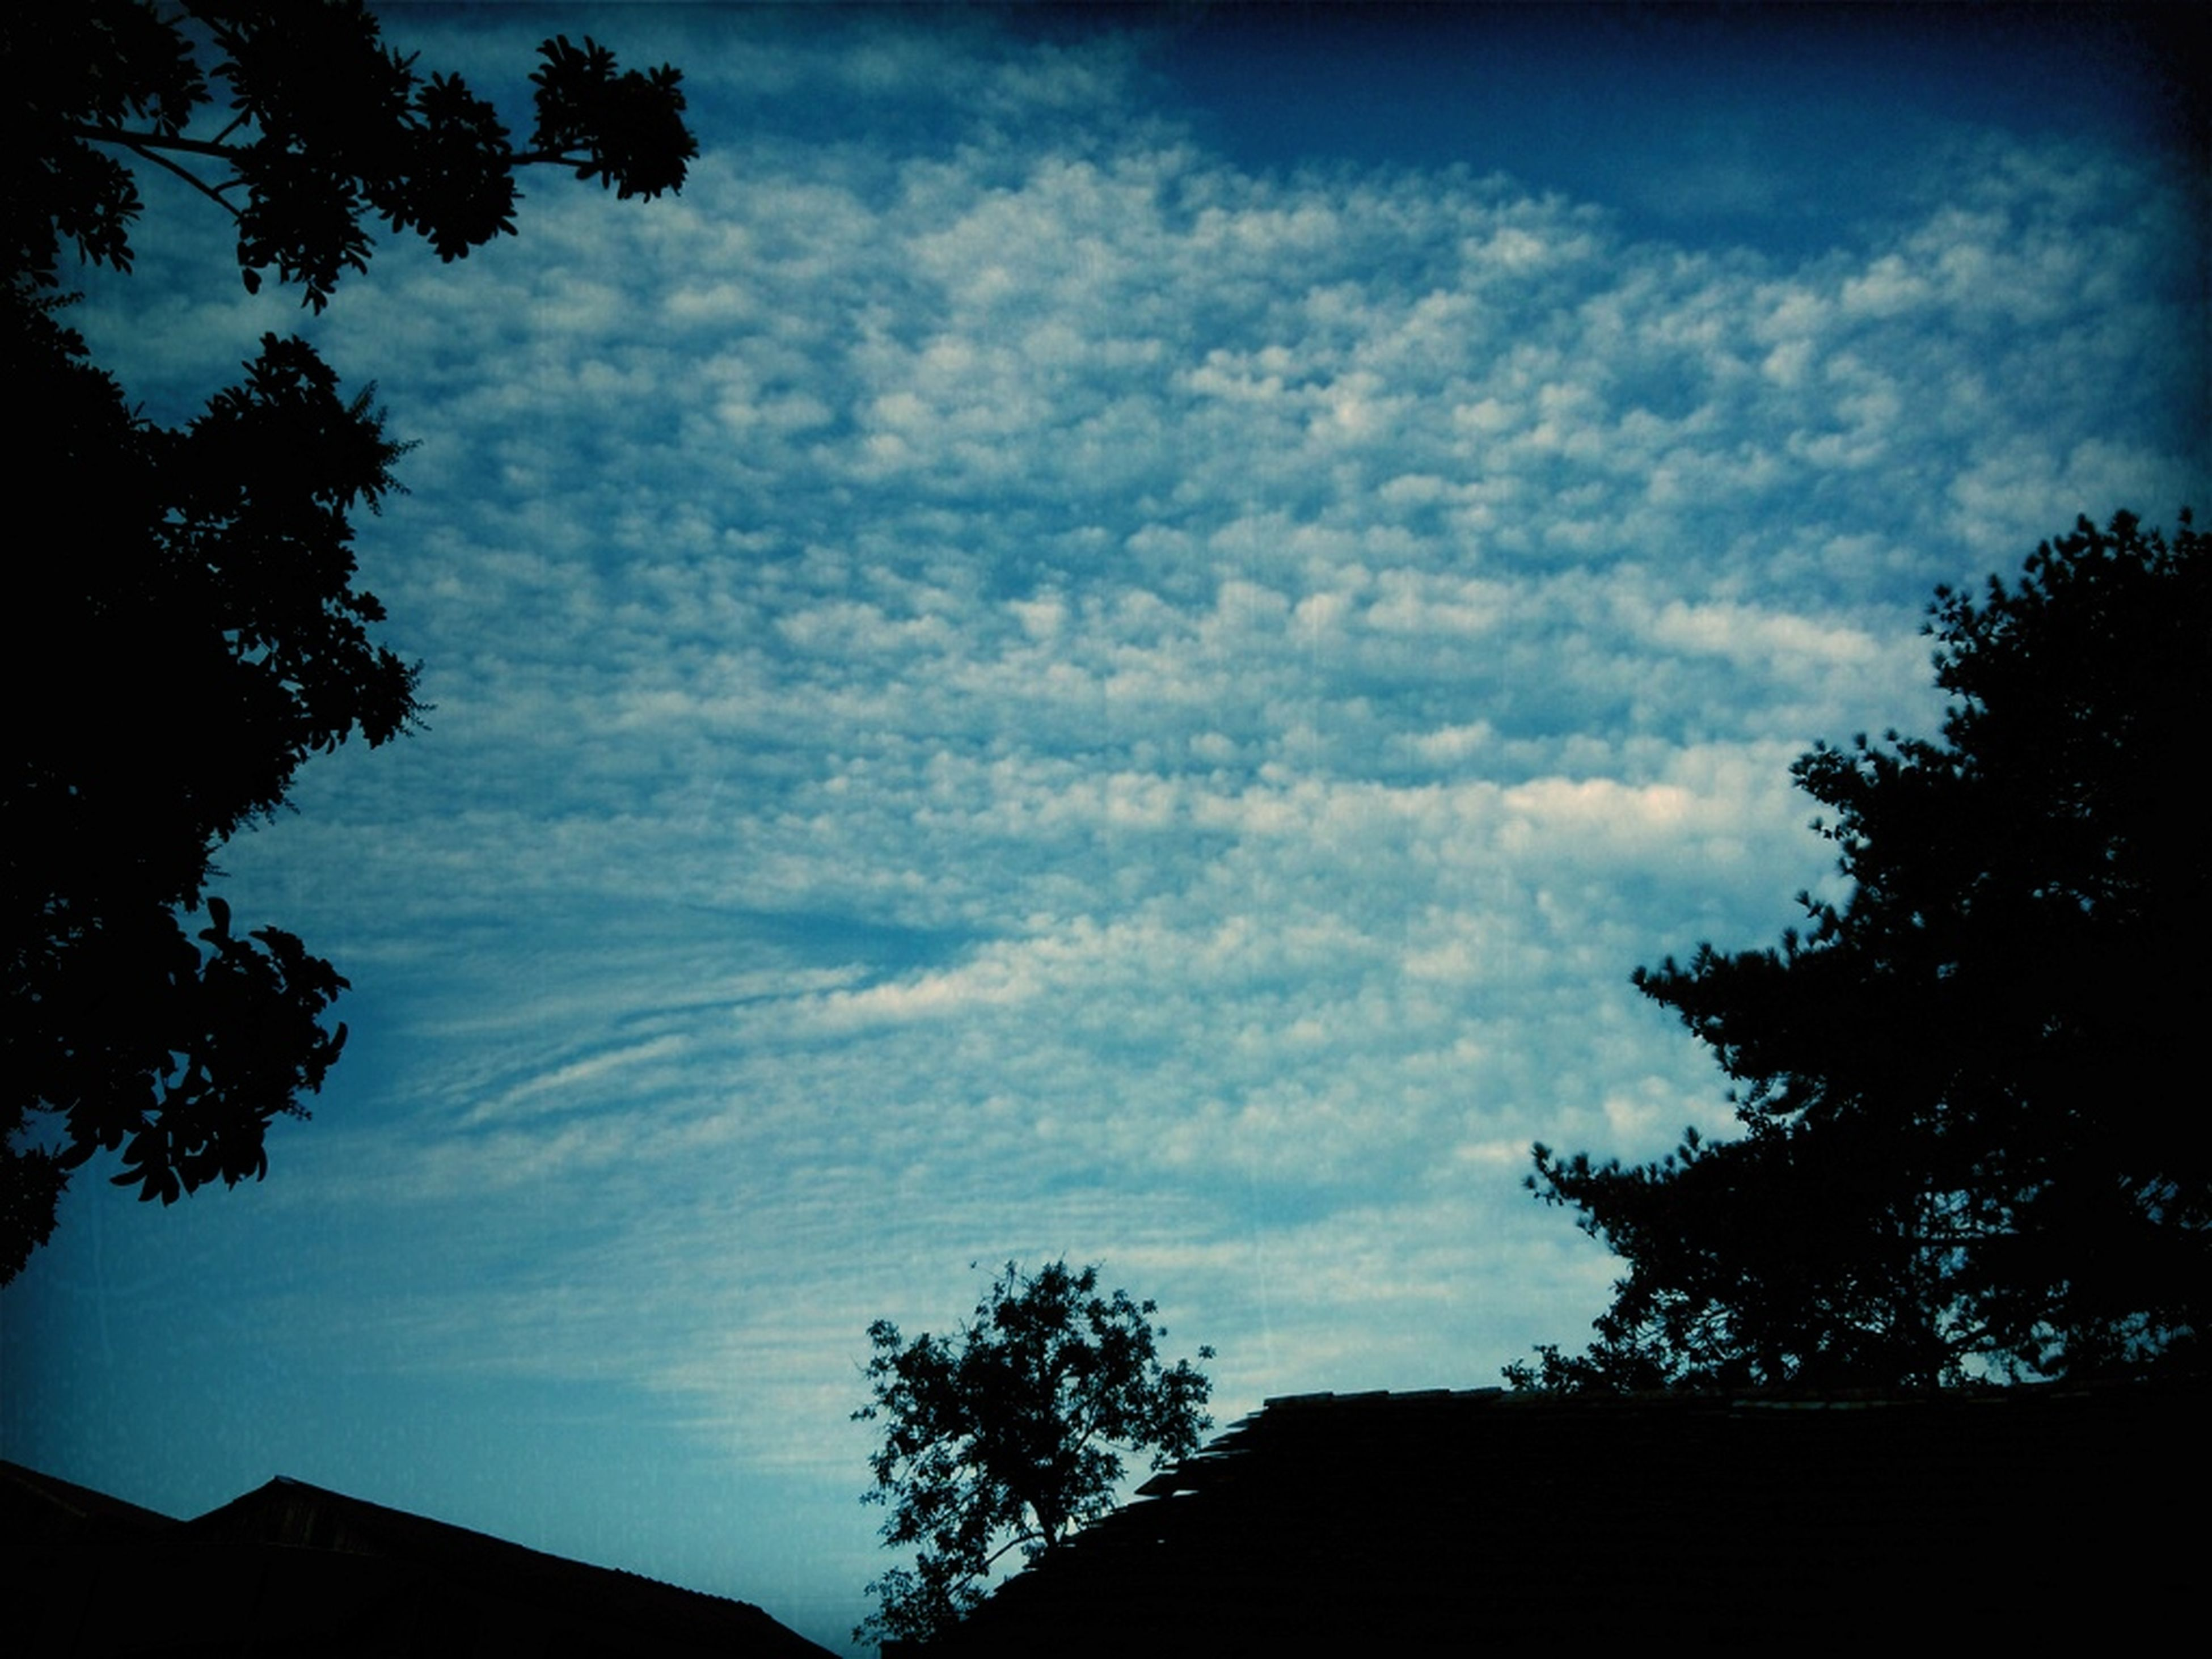 tree, low angle view, sky, silhouette, cloud - sky, built structure, building exterior, architecture, nature, beauty in nature, cloud, tranquility, cloudy, high section, branch, house, growth, scenics, dusk, outdoors